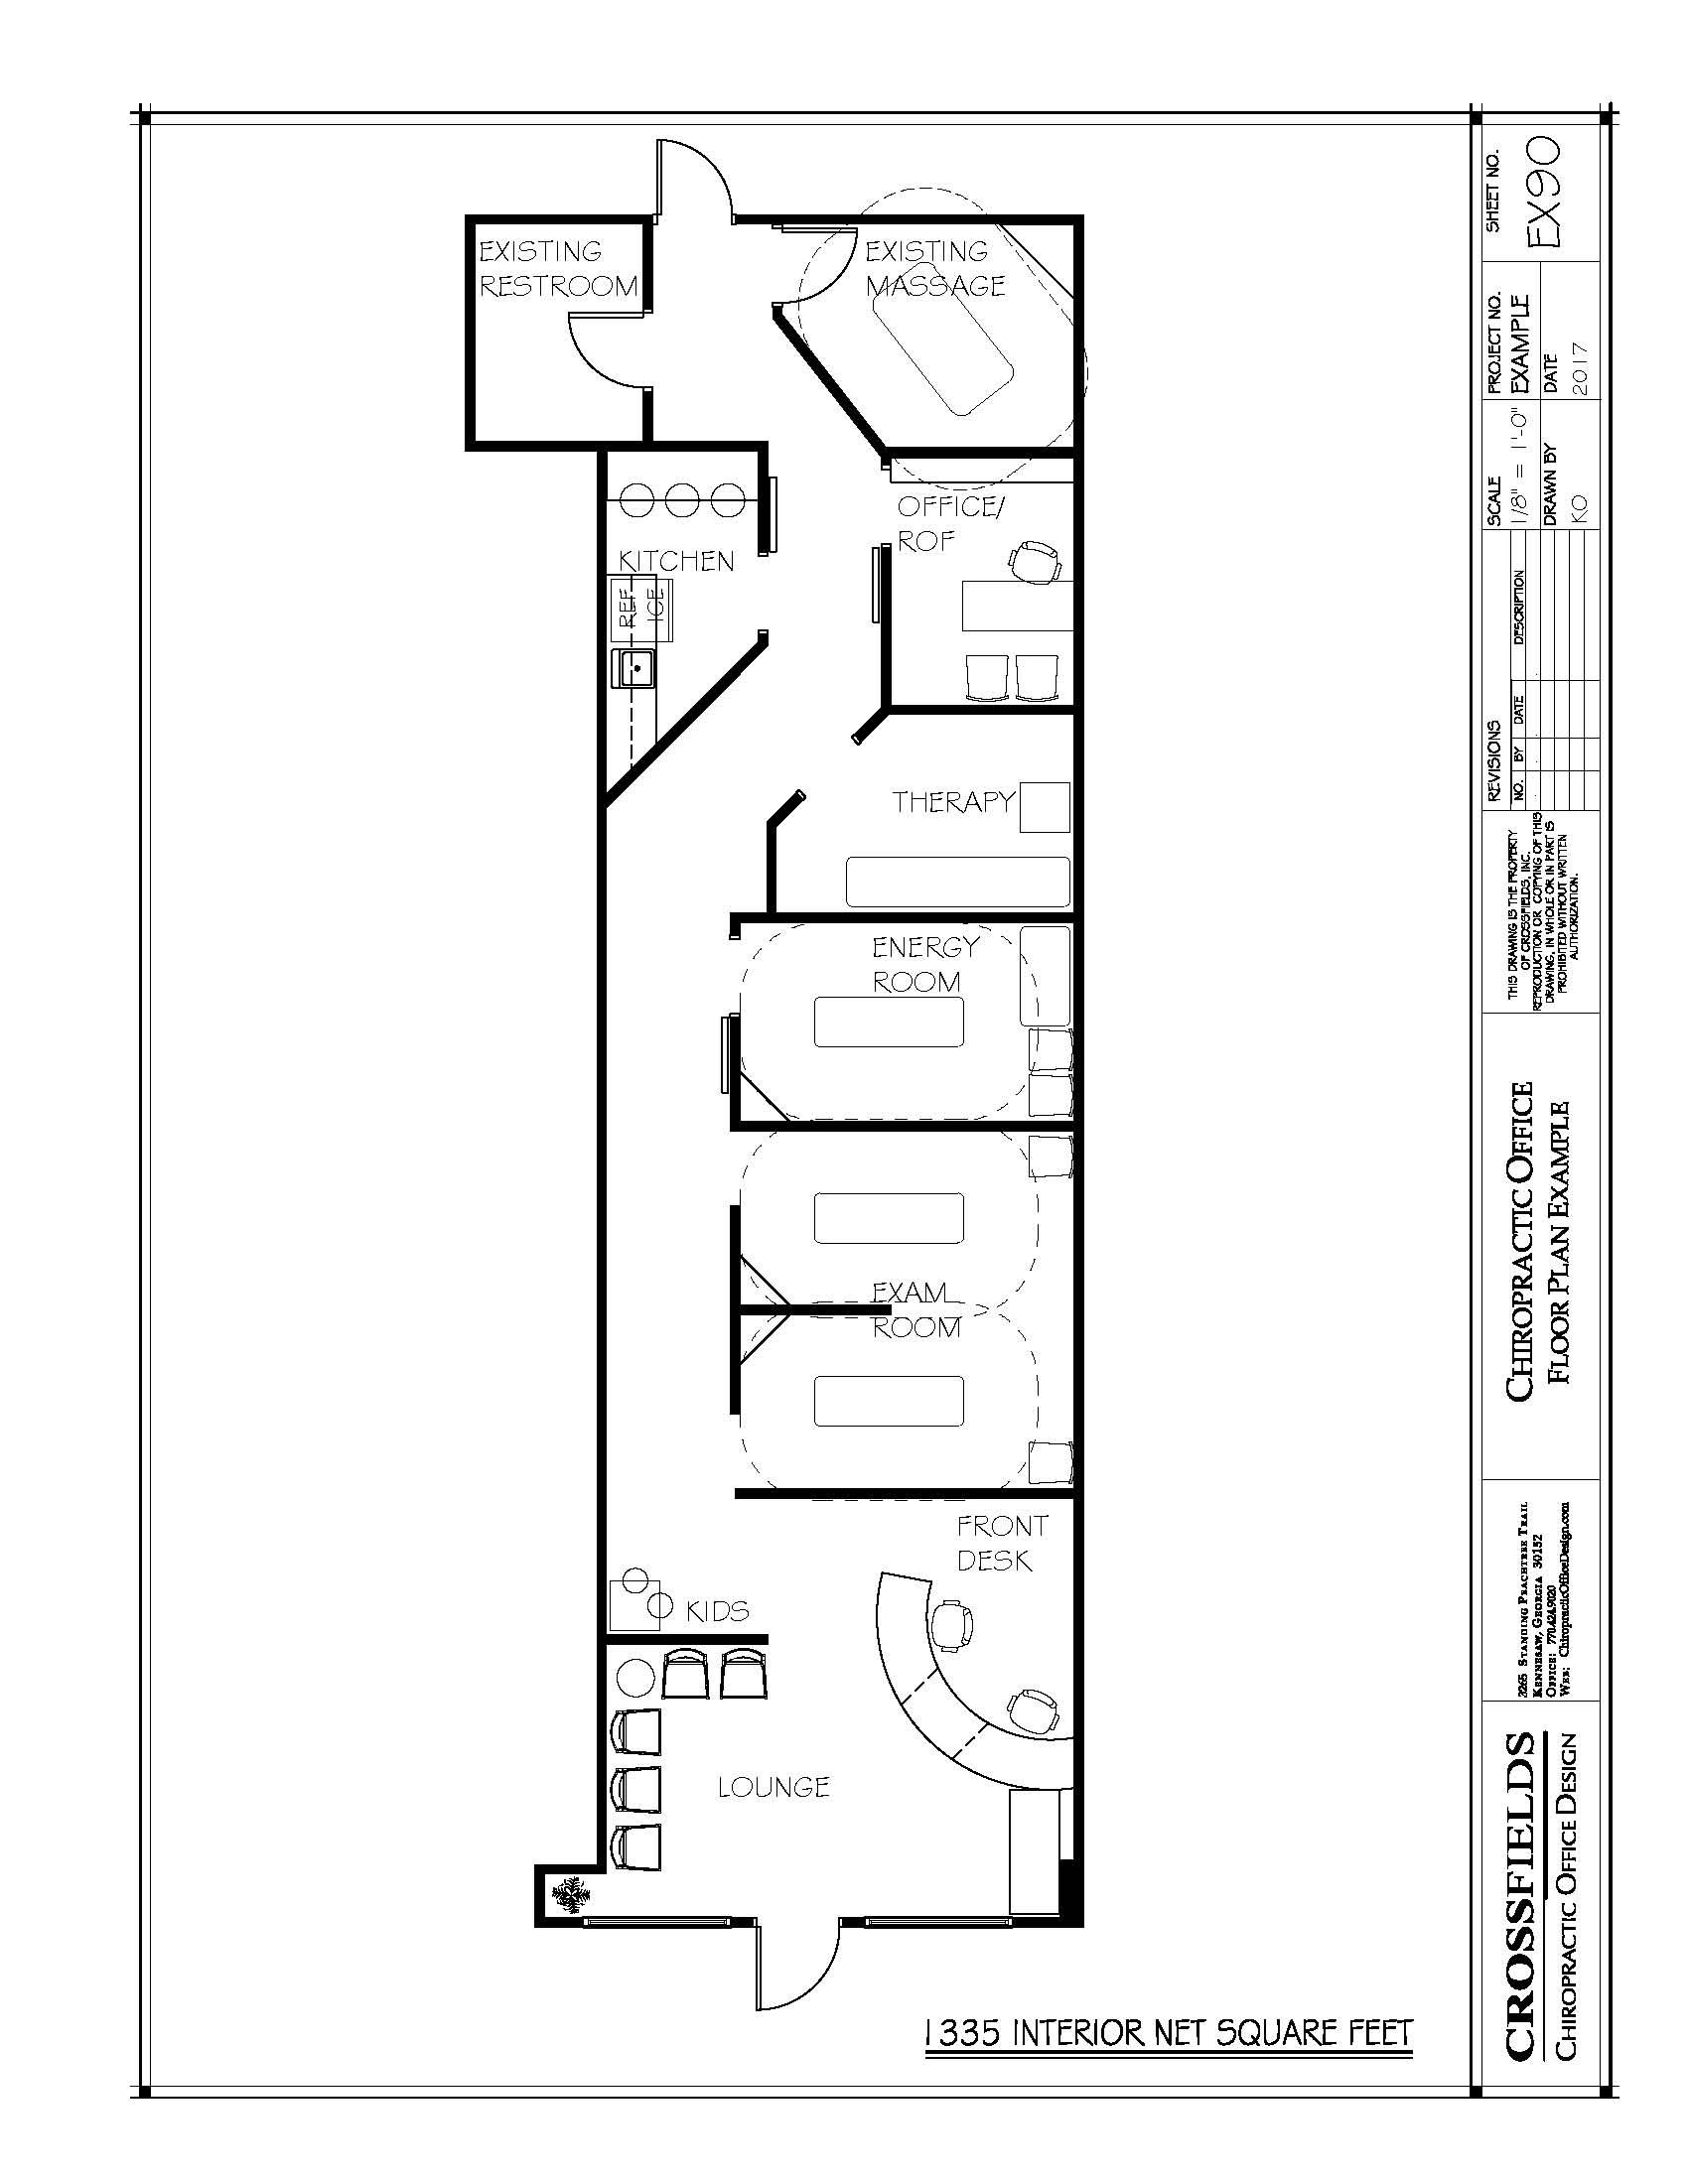 Chiropractic Office Floor Plans Versatile Medical Office Layouts Office Floor Plan Chiropractic Office Design Chiropractic Office